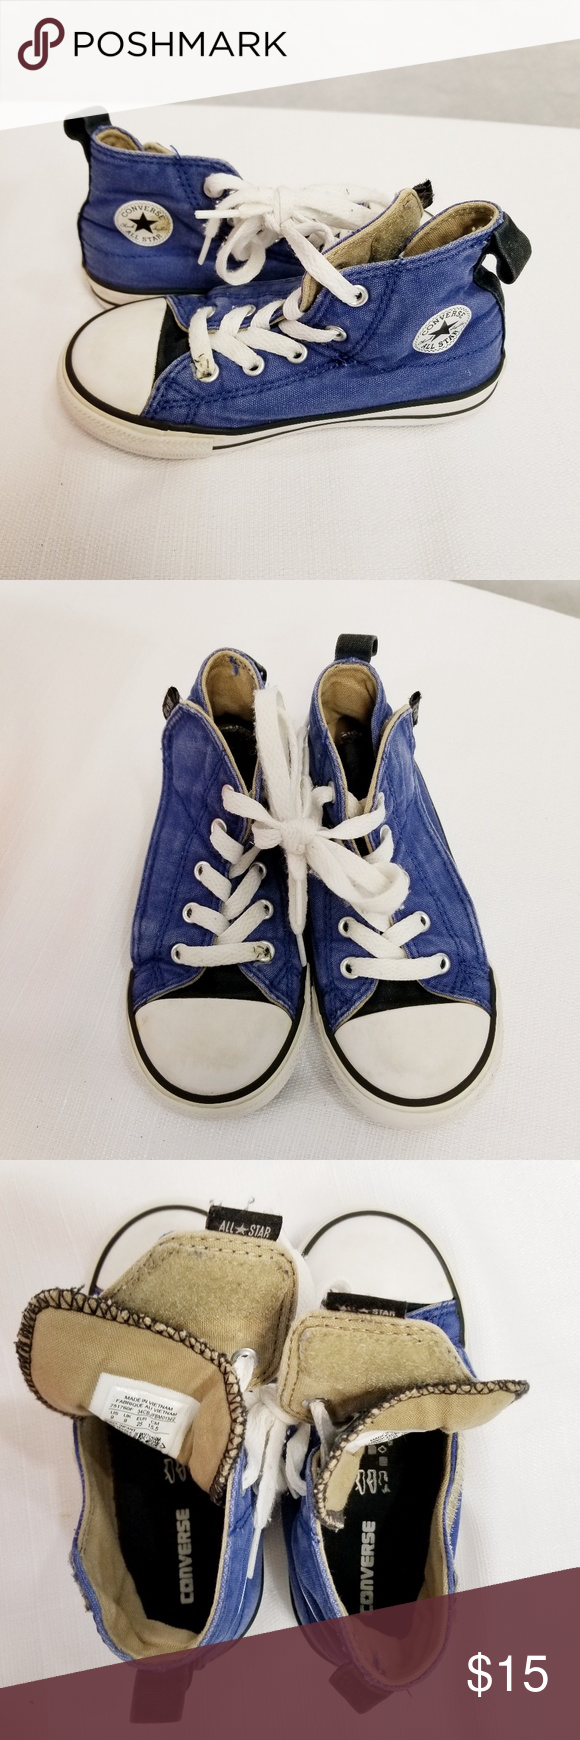 6a3b6791d19f Little Kid s Converse All Star Velcro Hi-Tops Easy on off Velcro closure  Converse